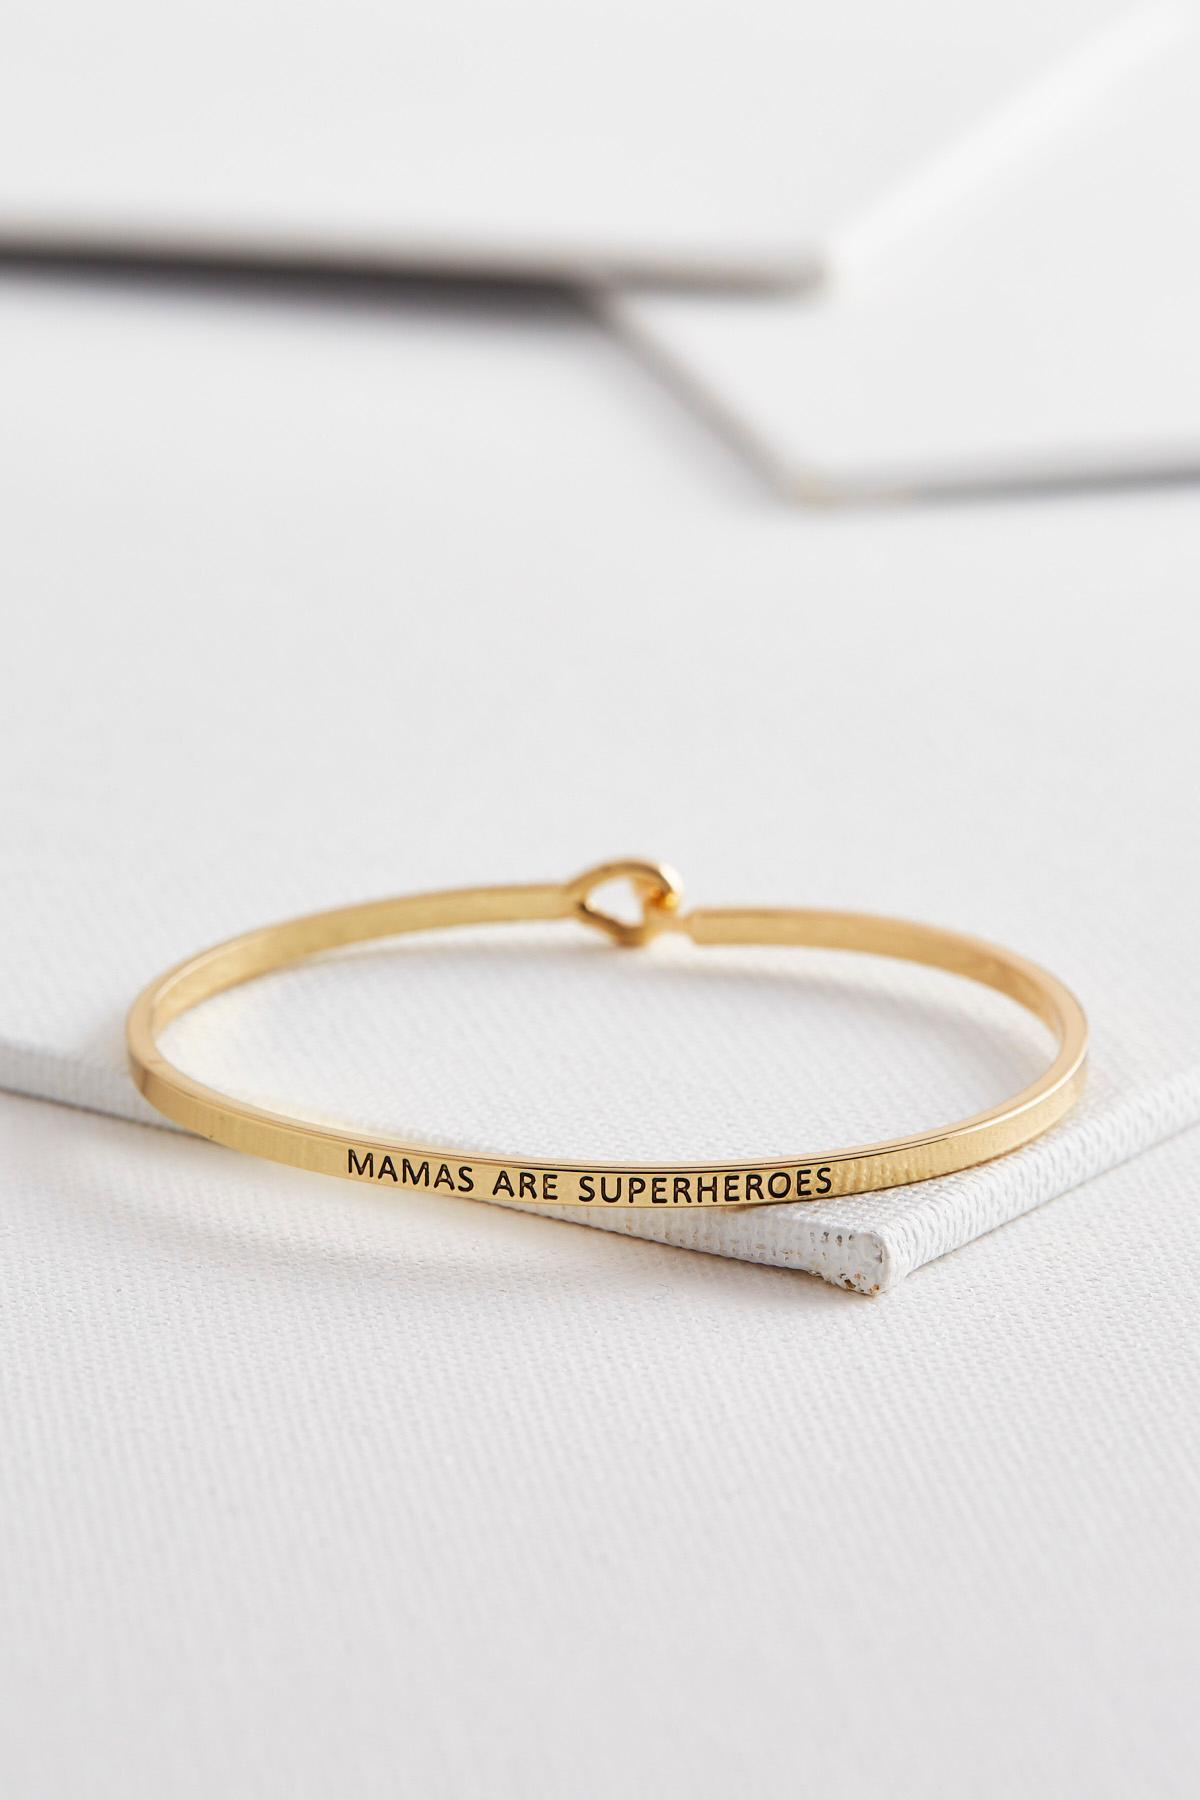 Mamas Are Superheroes Bangle